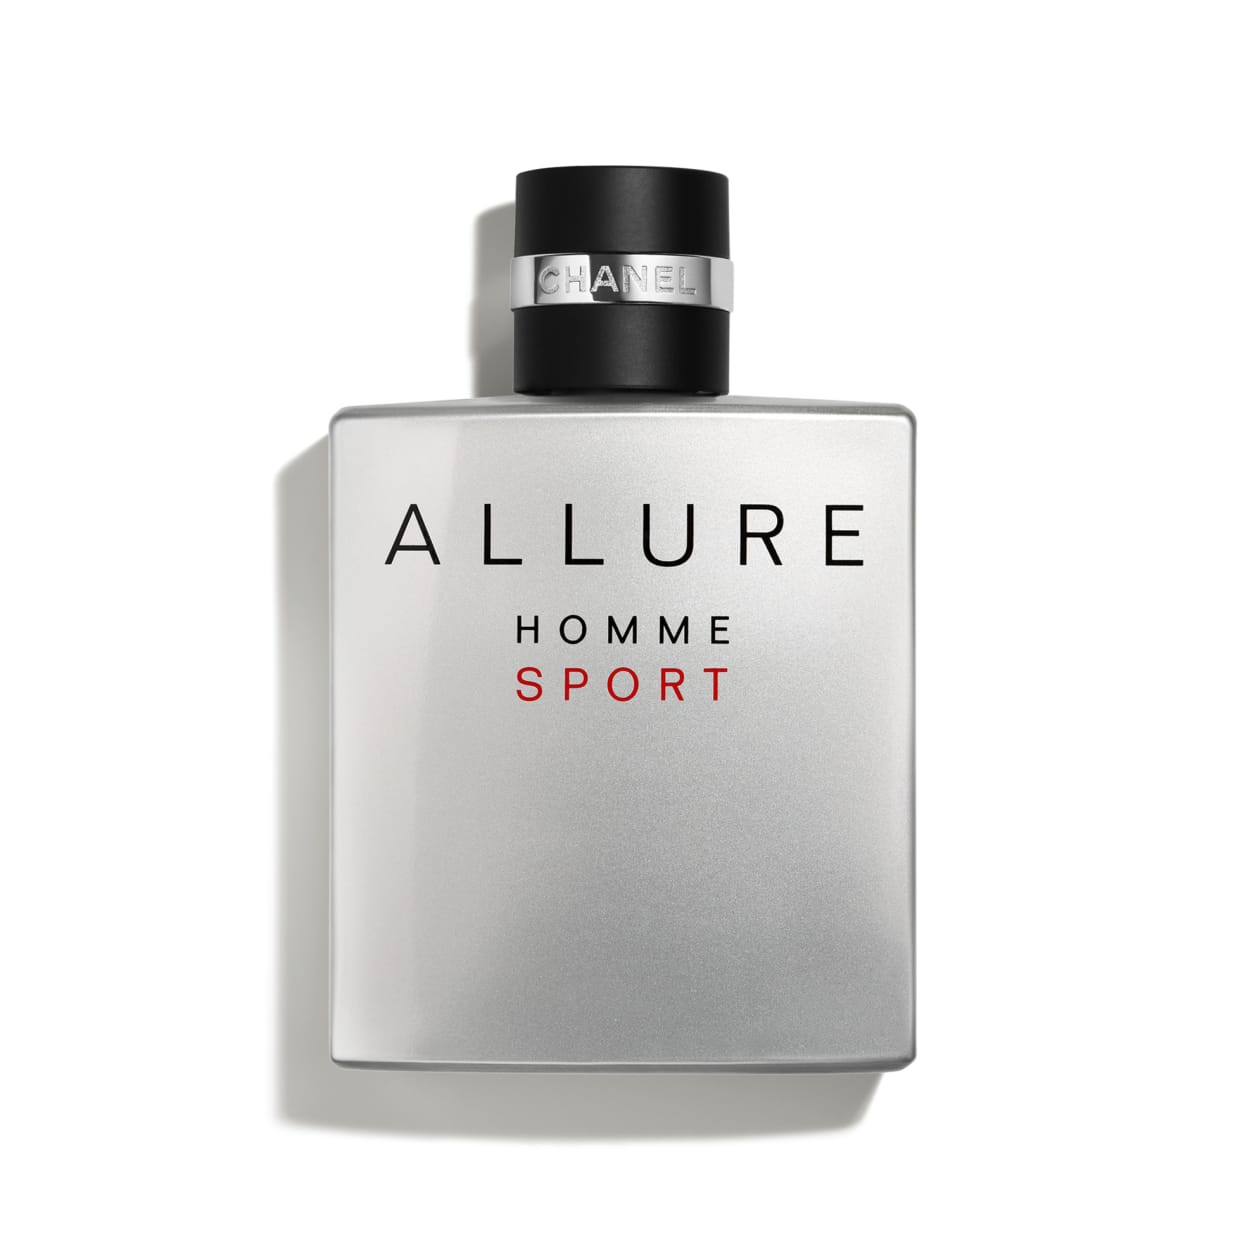 39e33d19f9ec Allure Homme Sport Chanel cologne - a fragrance for men 2004